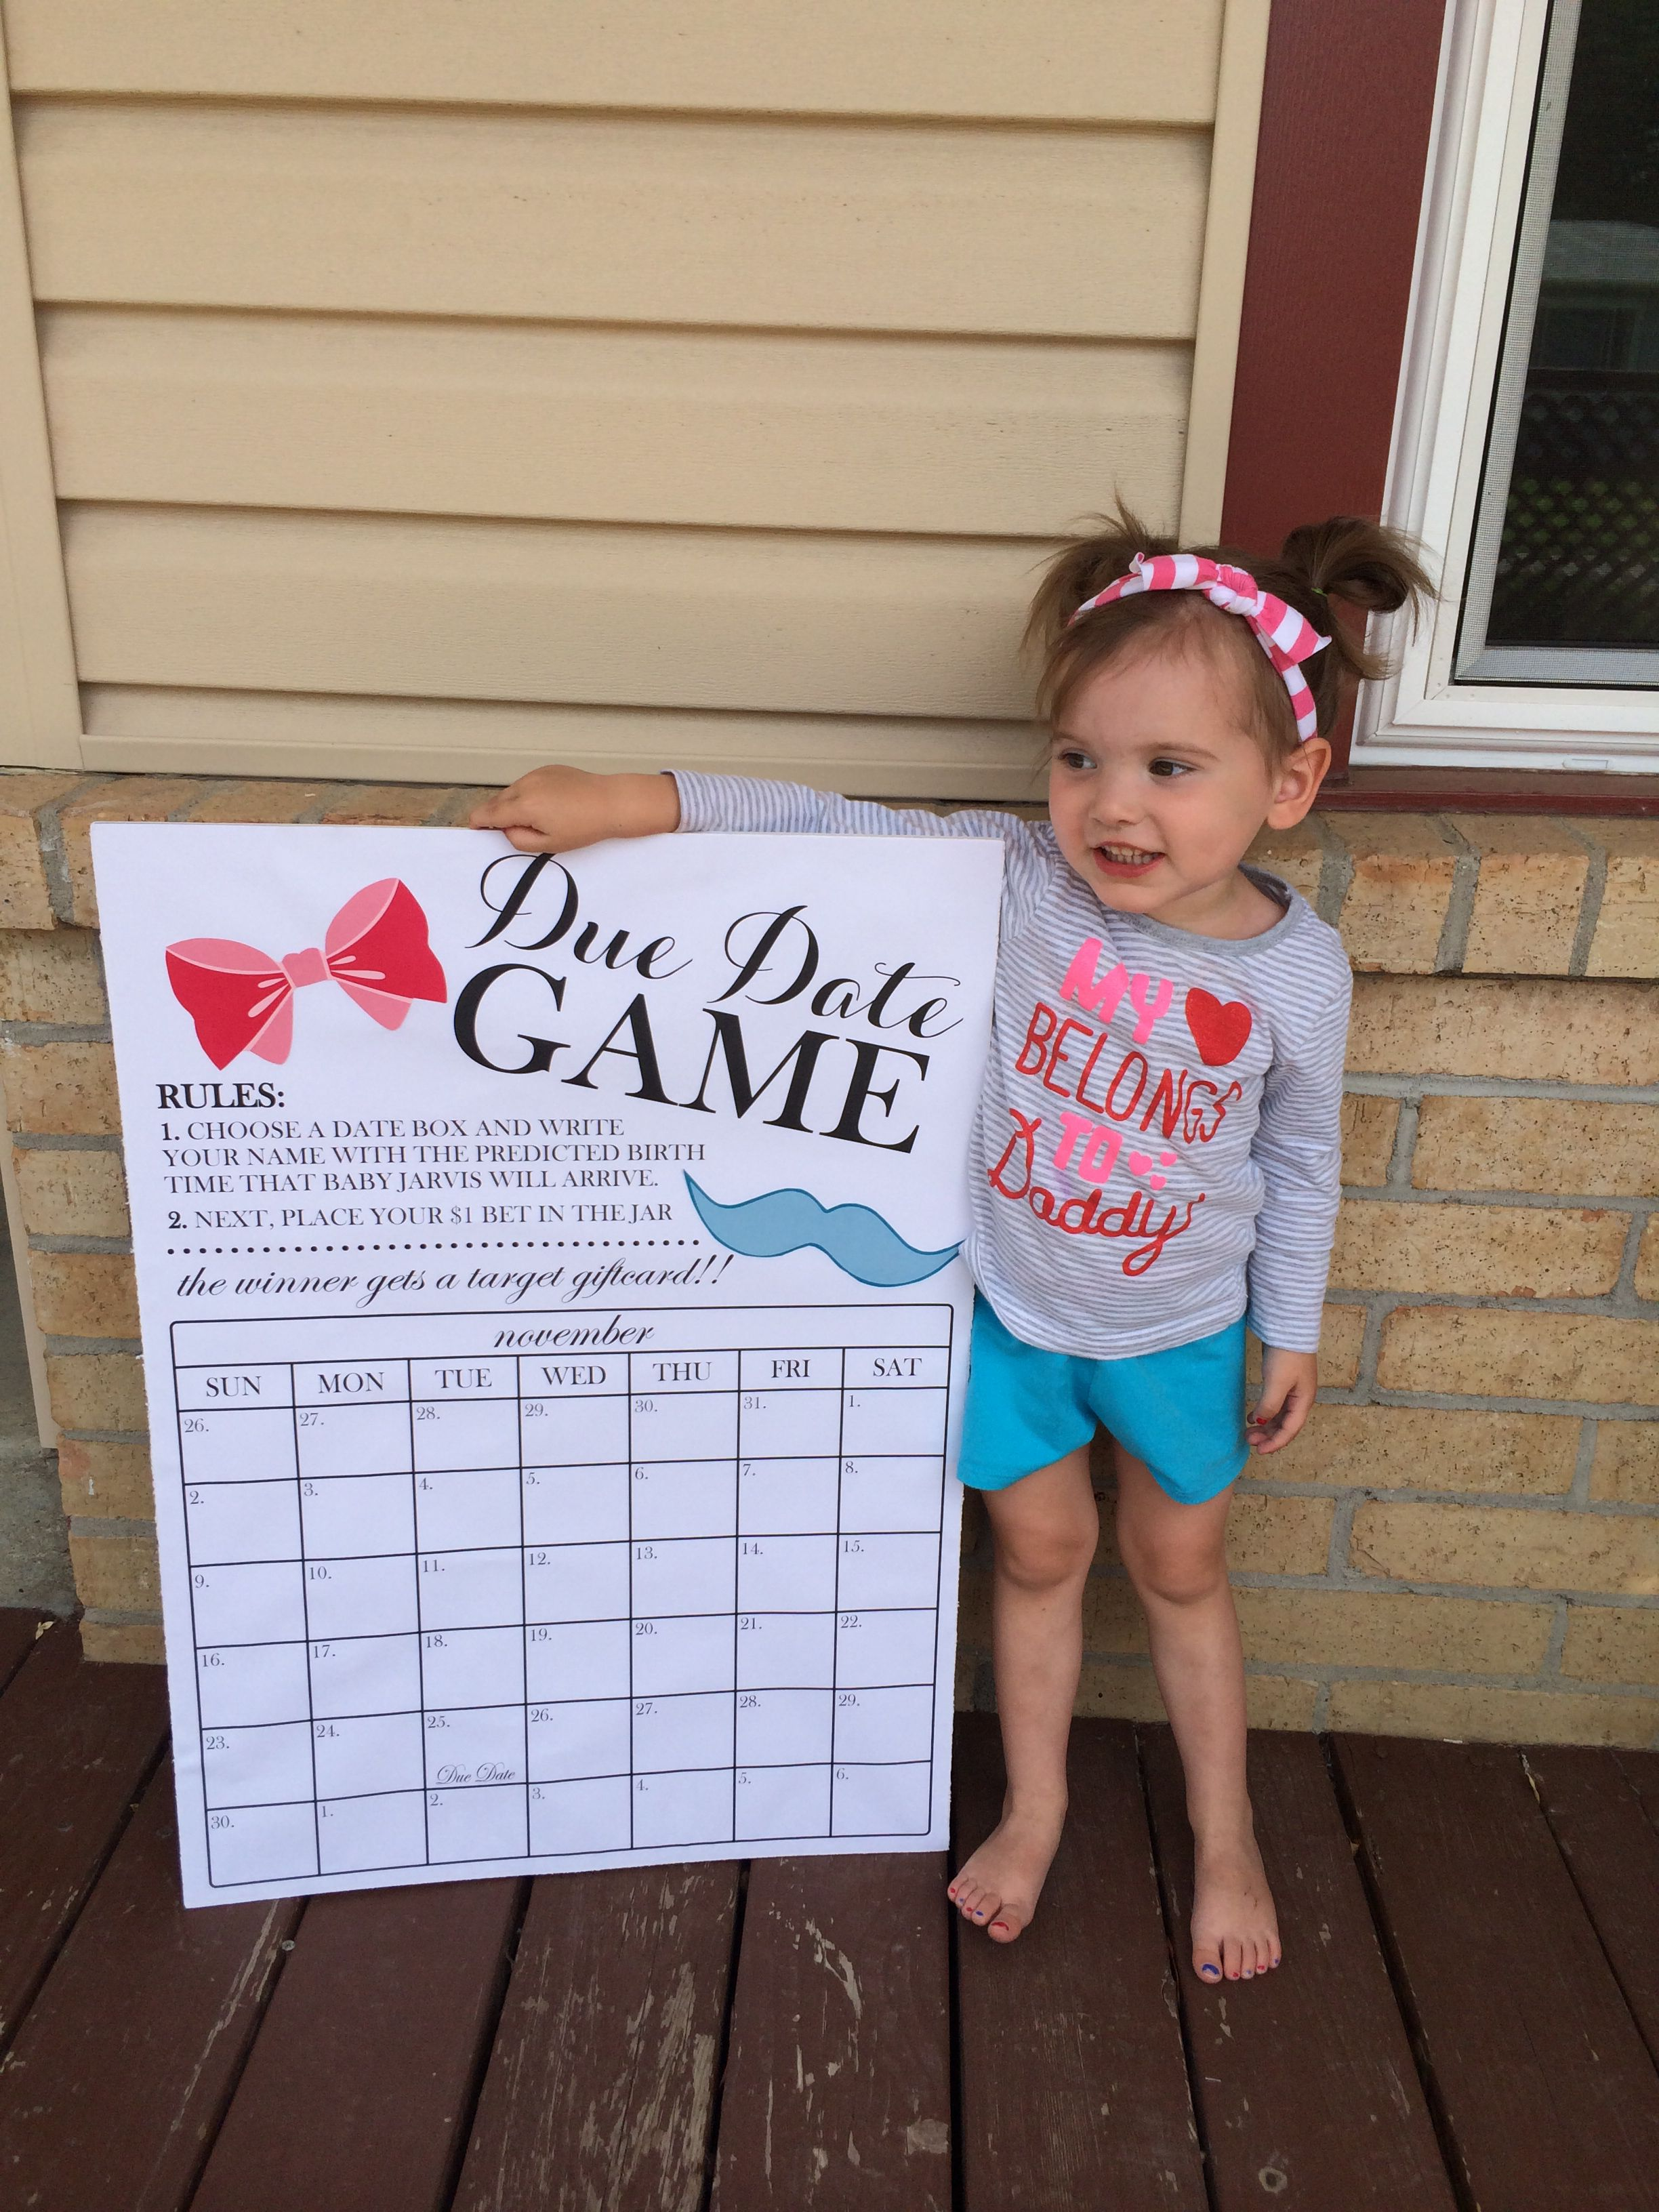 Baby dating games